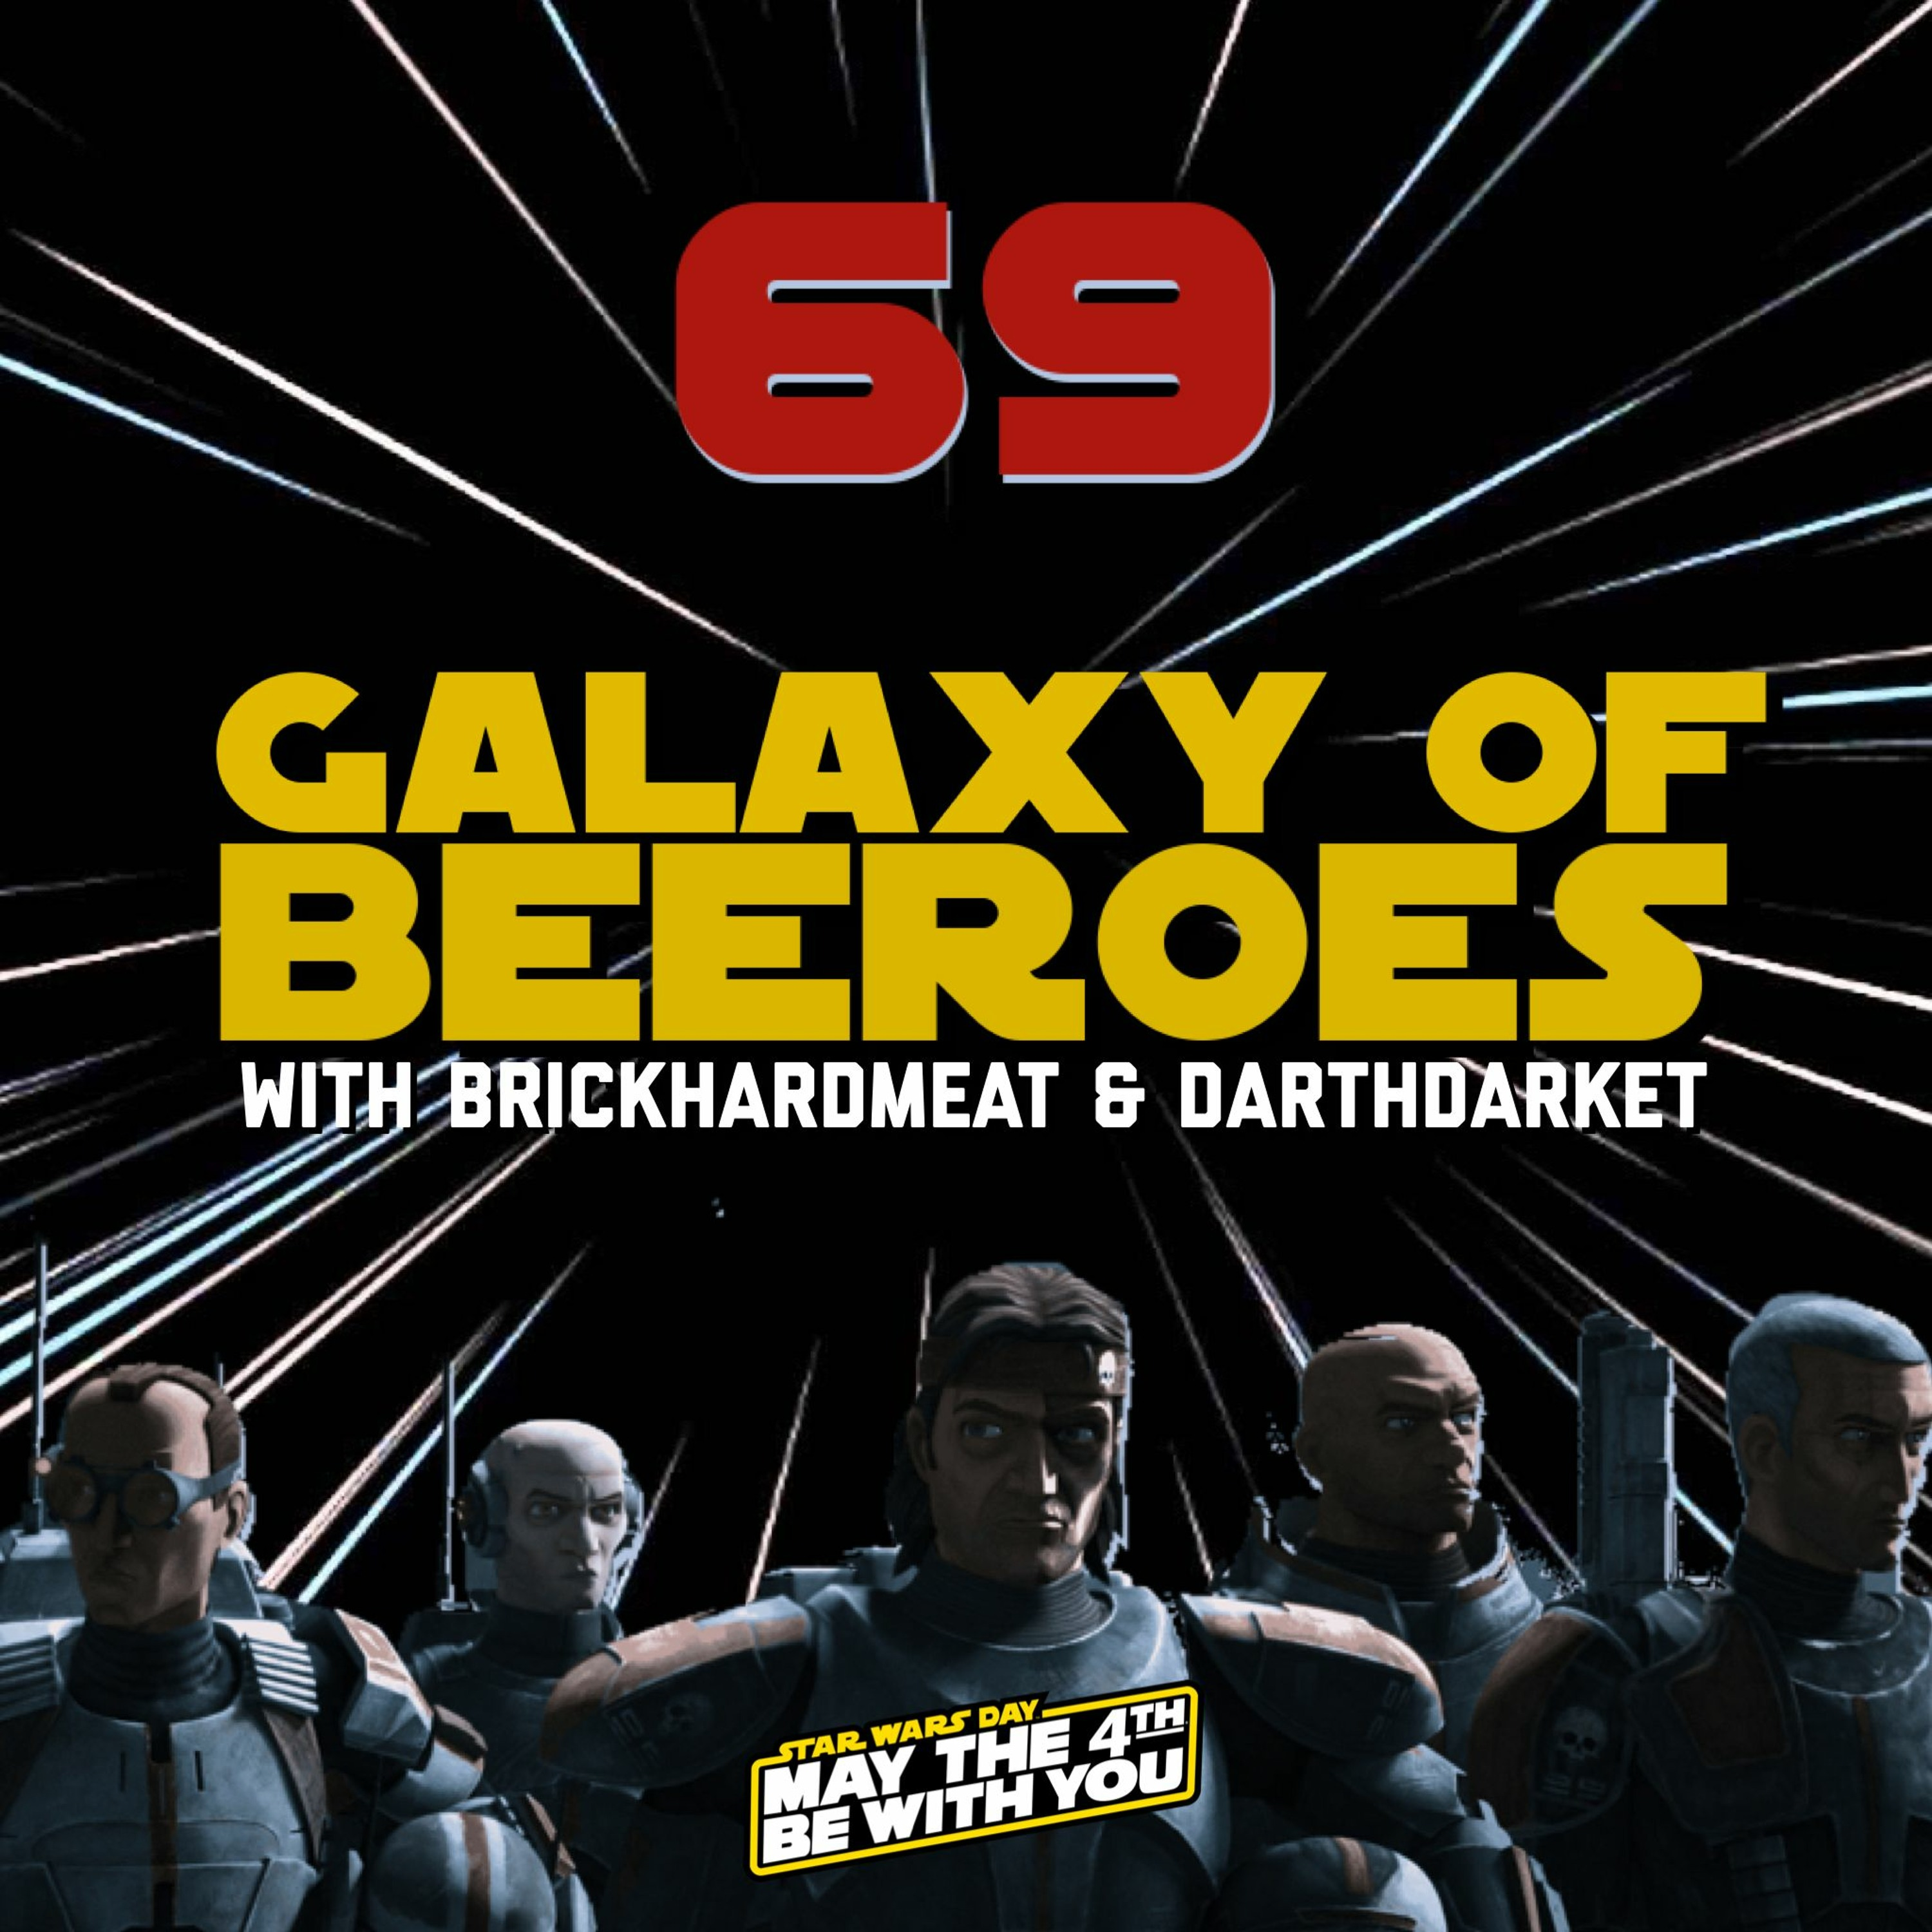 Episode 69 - May the Fourth & Bad Batch E1 Review - Hosted by BrickHardmeat & DarthDarket